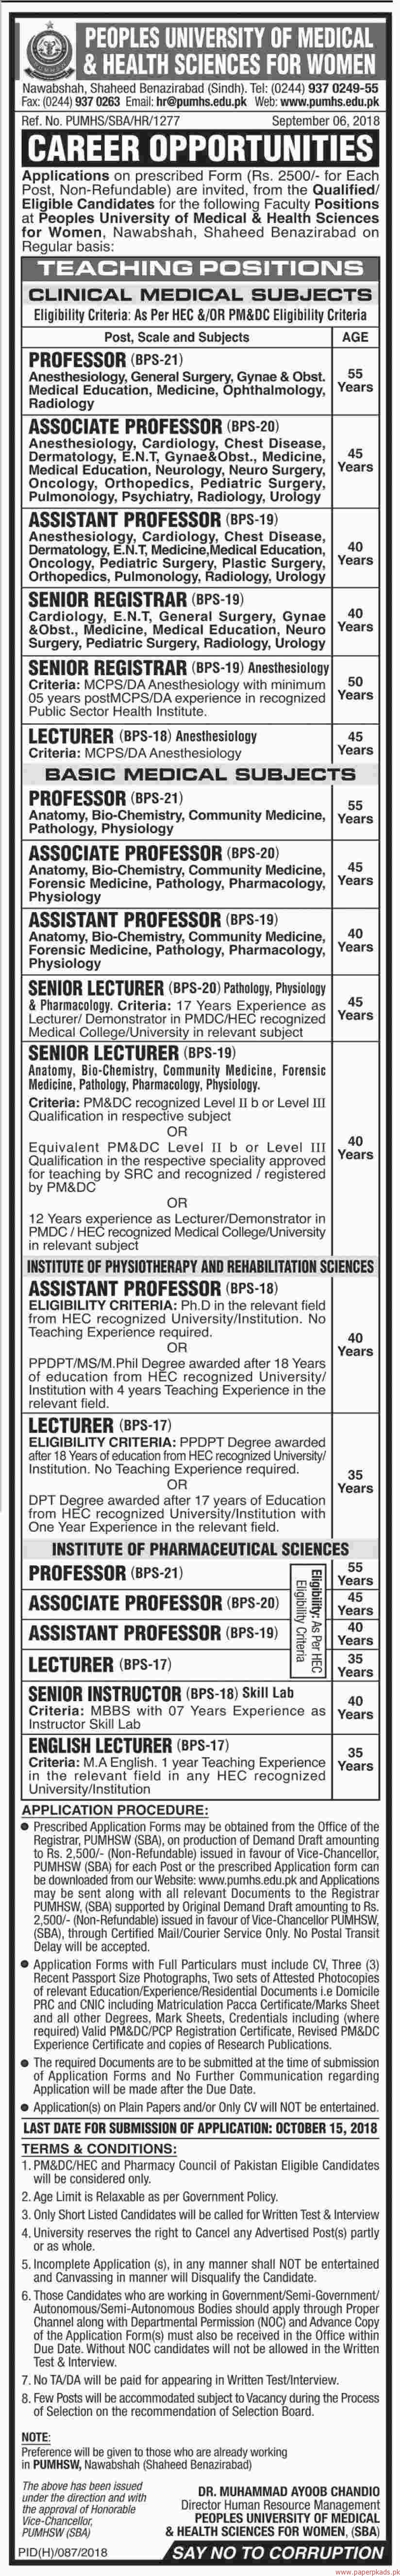 Peoples University of Medical & Health Sciences for Women Jobs 2018 latest